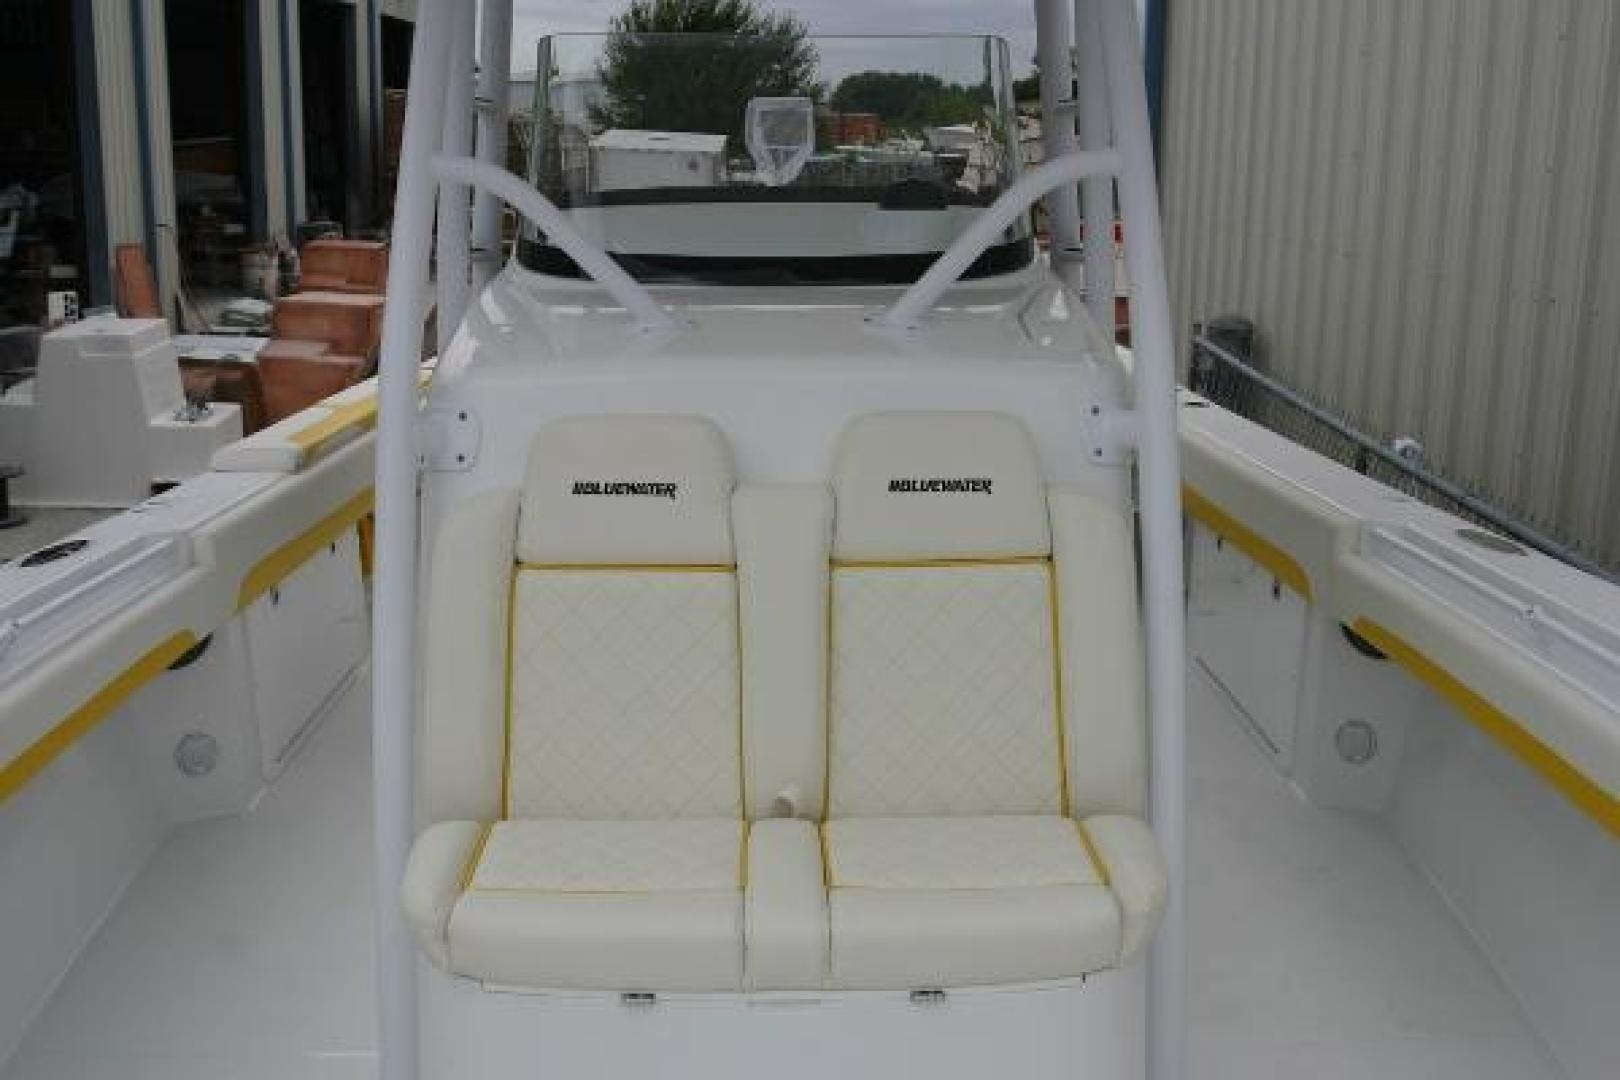 2021 Bluewater Sportfishing 35' 355e Bluewater Sportfishing 355e | Picture 7 of 9